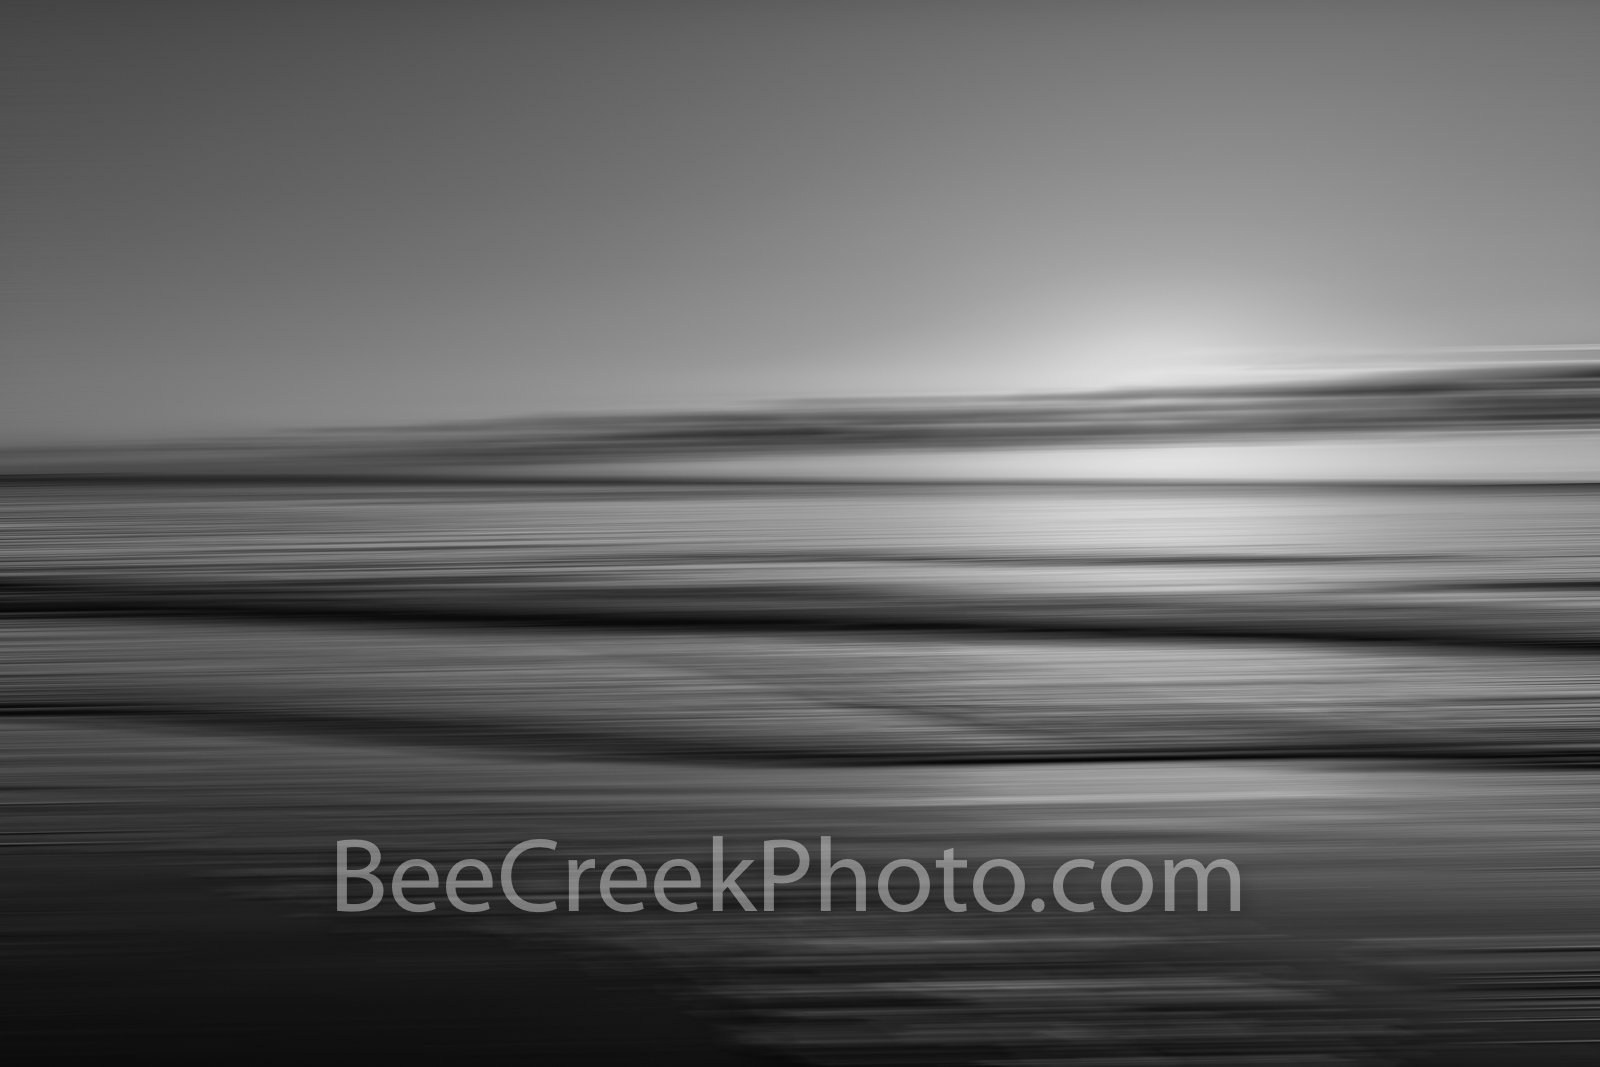 Ocean Wave Abstract BW - Ocean waves as a long exposure as a digital abstract in black and white. Digital art which creates this...